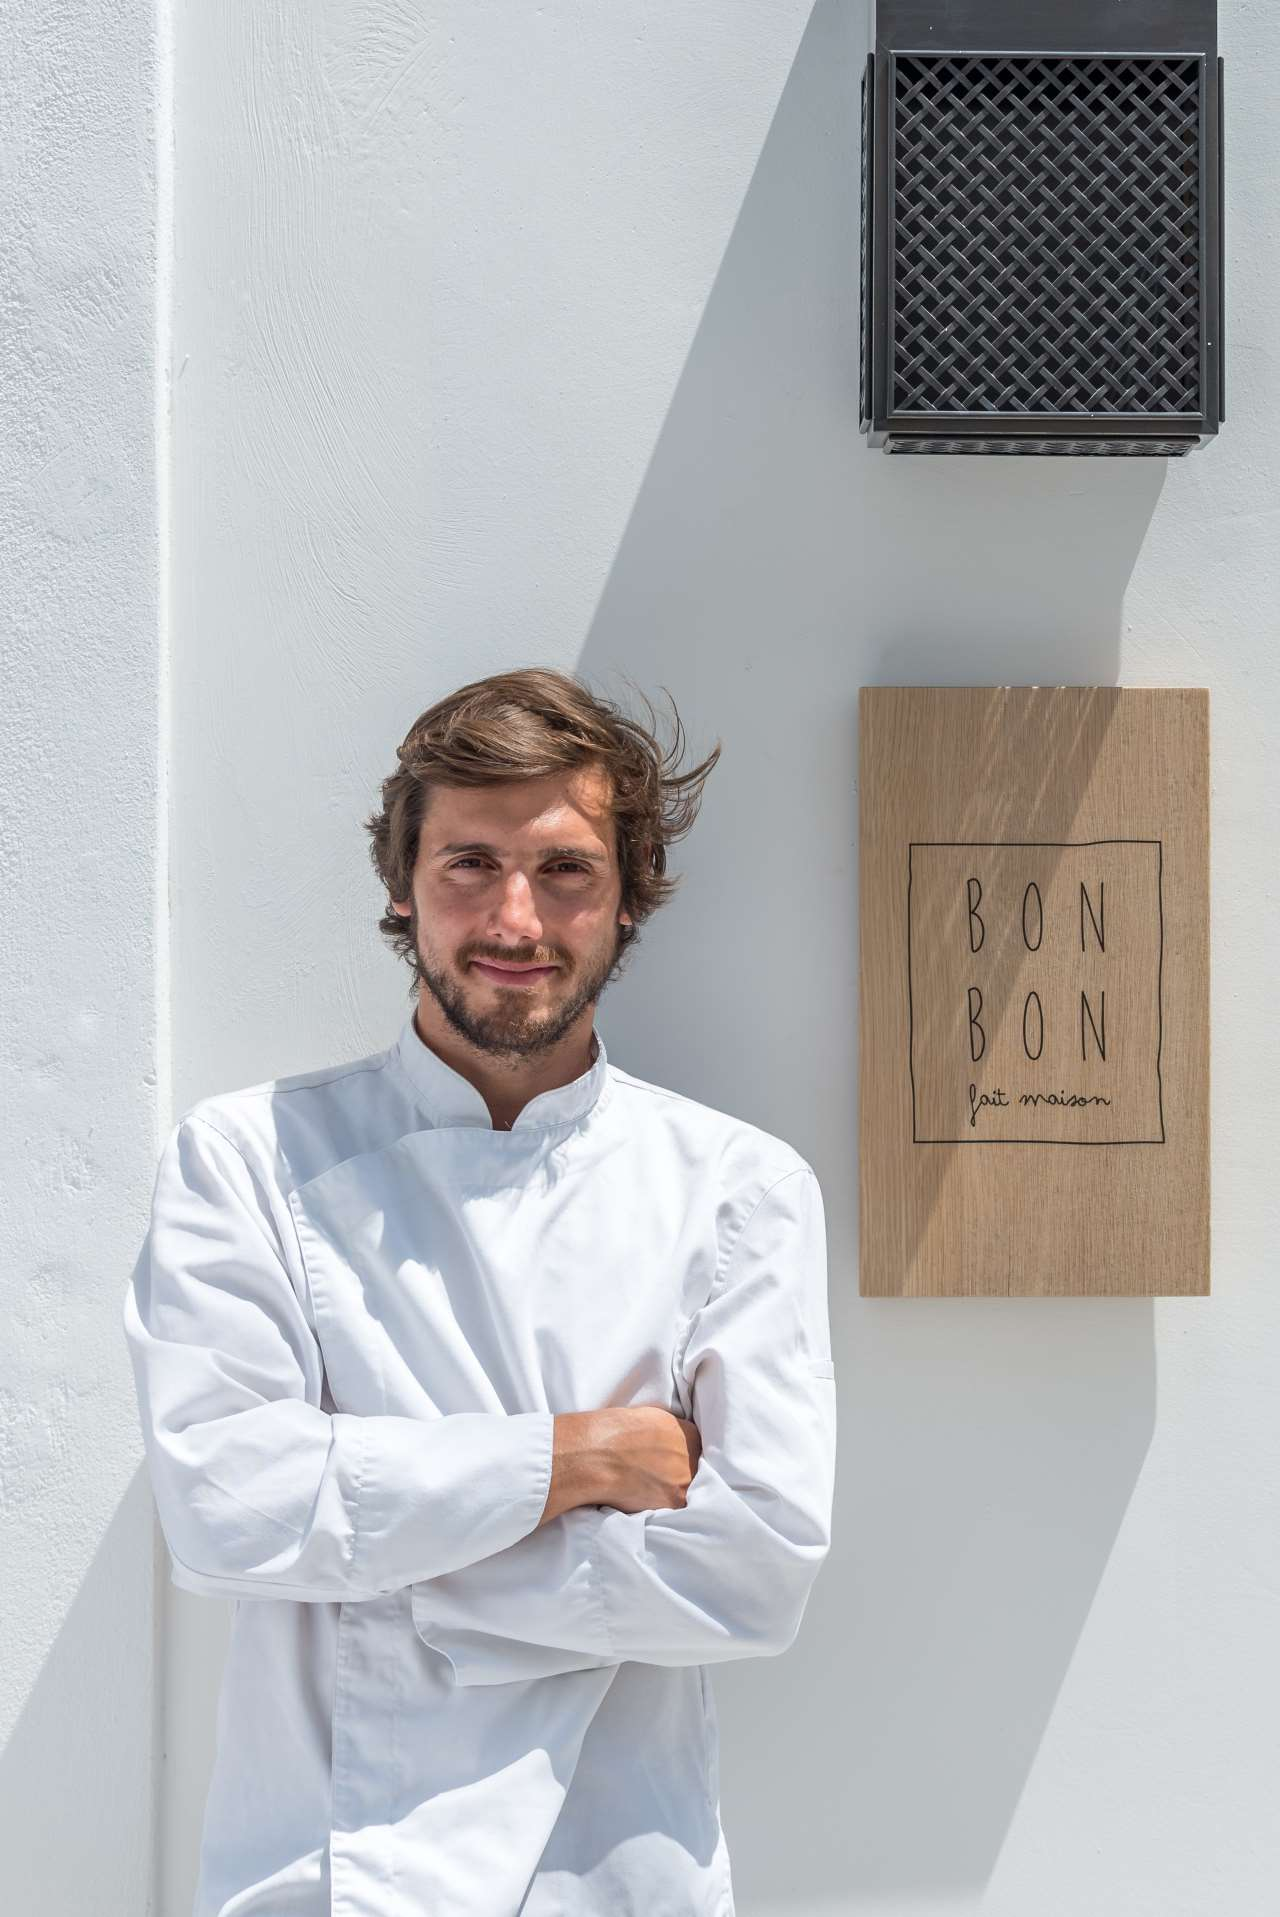 Kriton Minas Poulis, Co-founder and Chef. Photo by Giorgos Sfakianakis.